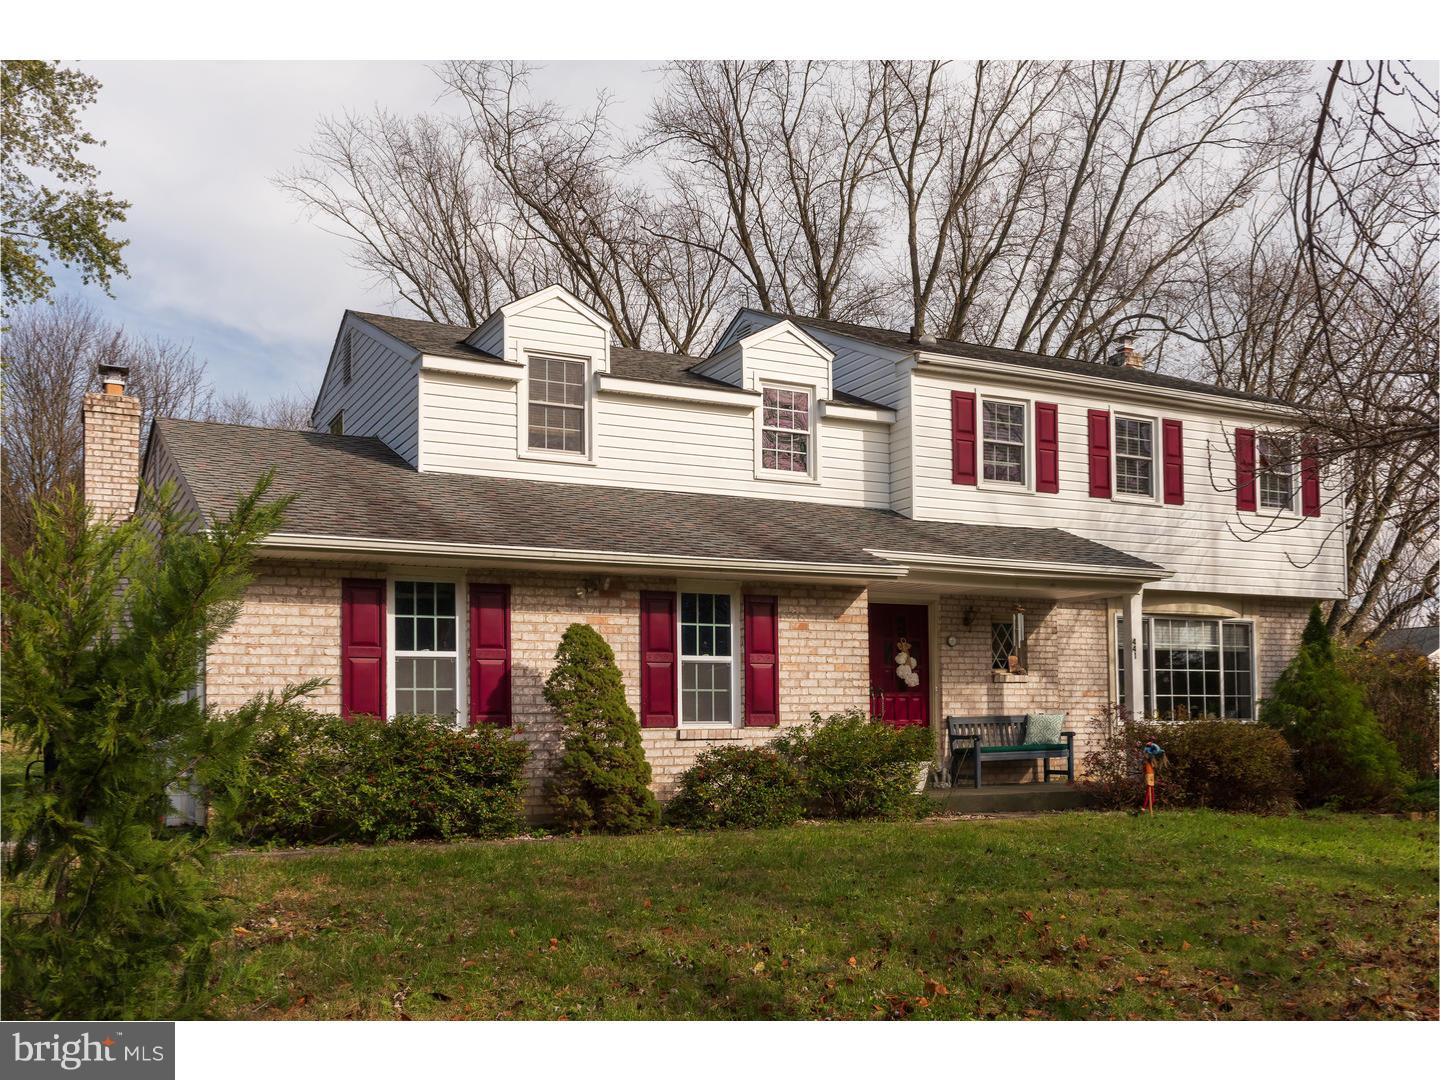 441 Barker Drive West Chester , PA 19380